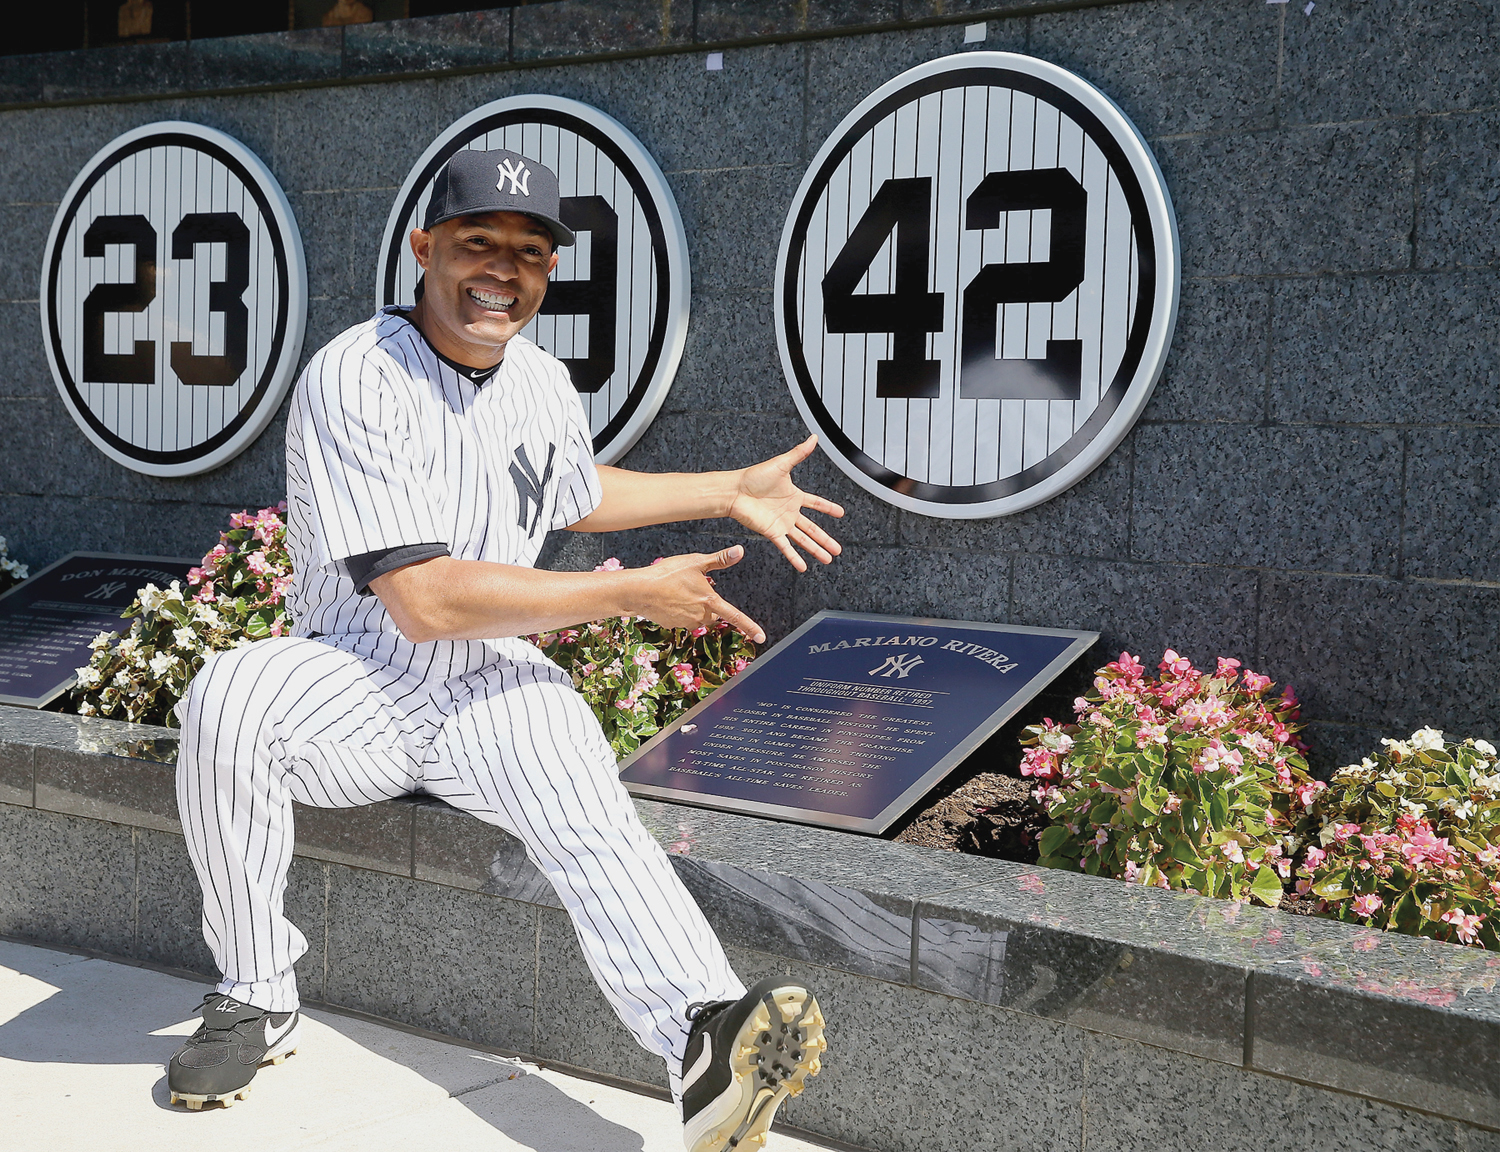 Mariano Rivera sitting next to his retired jersey number at Monument Park.